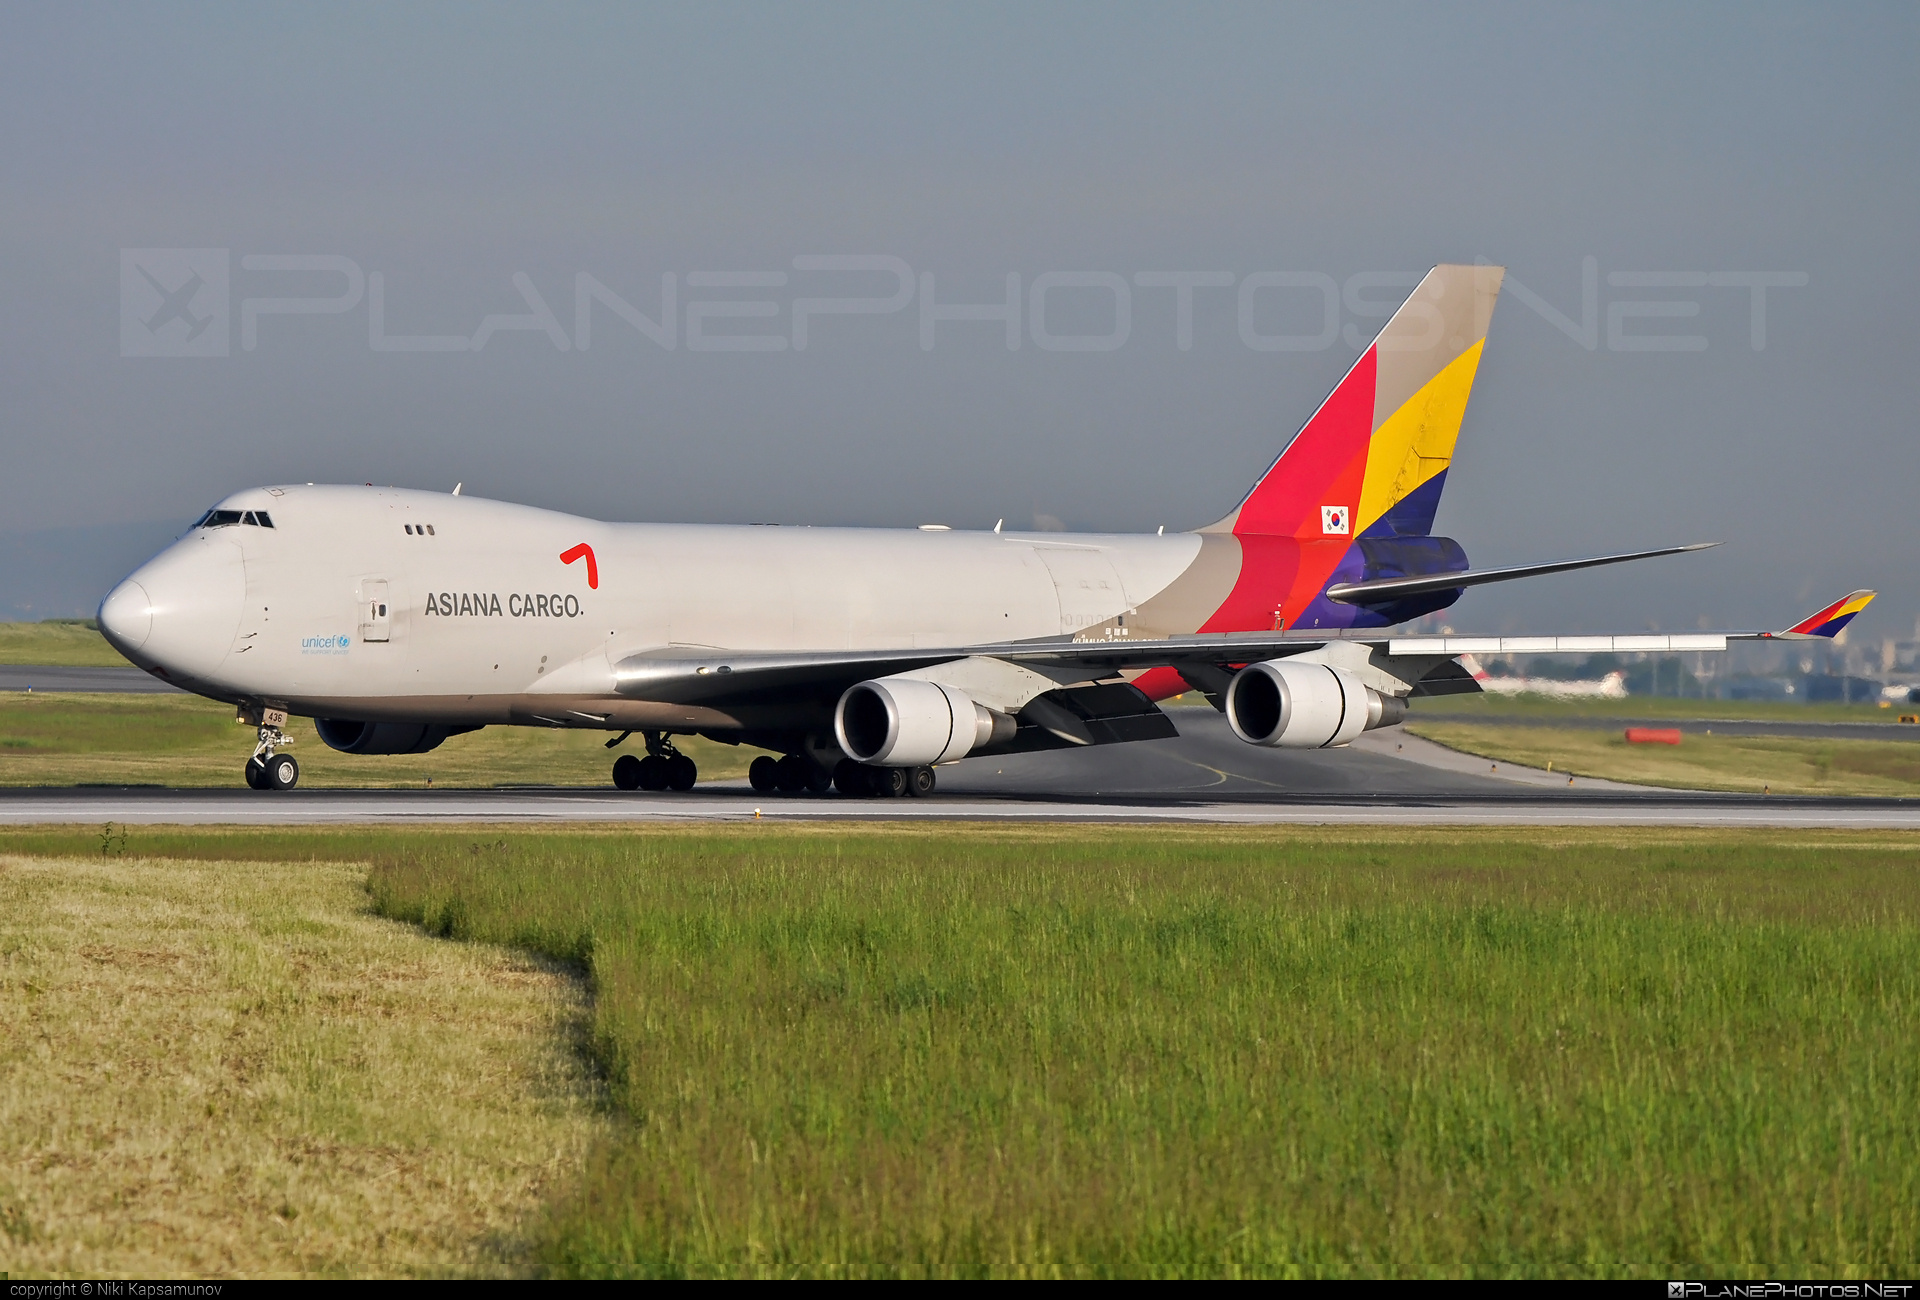 Boeing 747-400F - HL7436 operated by Asiana Cargo #asianacargo #b747 #boeing #boeing747 #jumbo